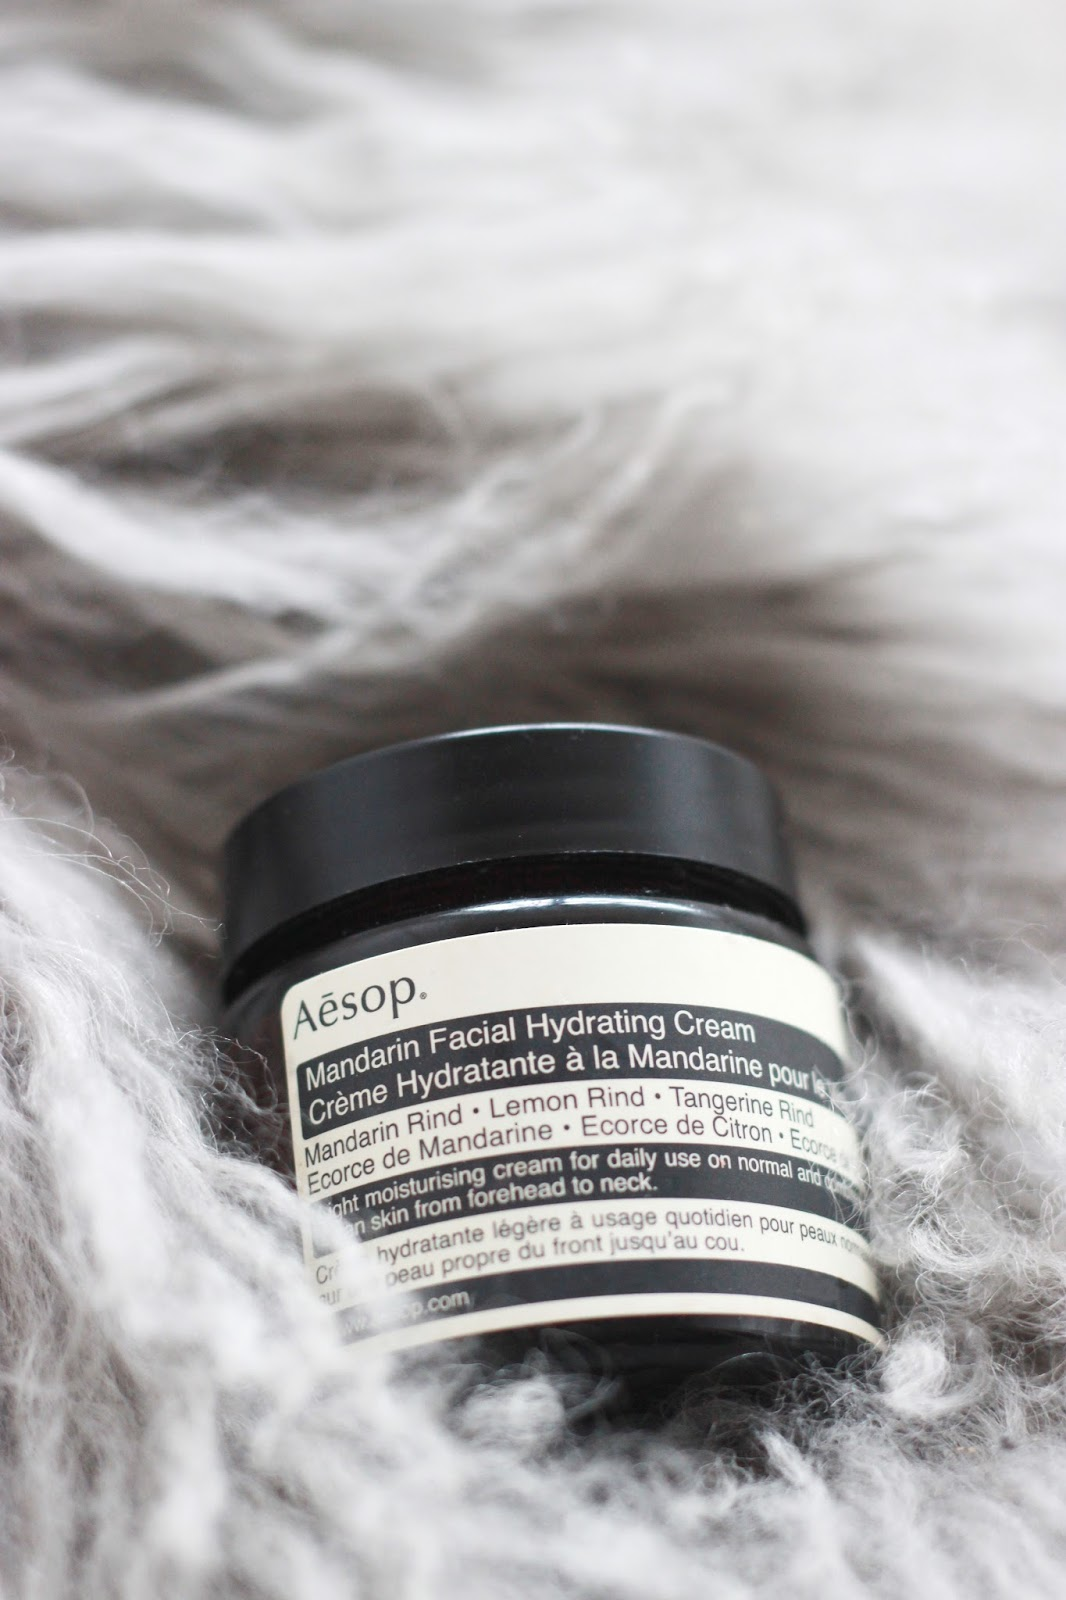 Aesop Mandarin Hydrating Facial Cream